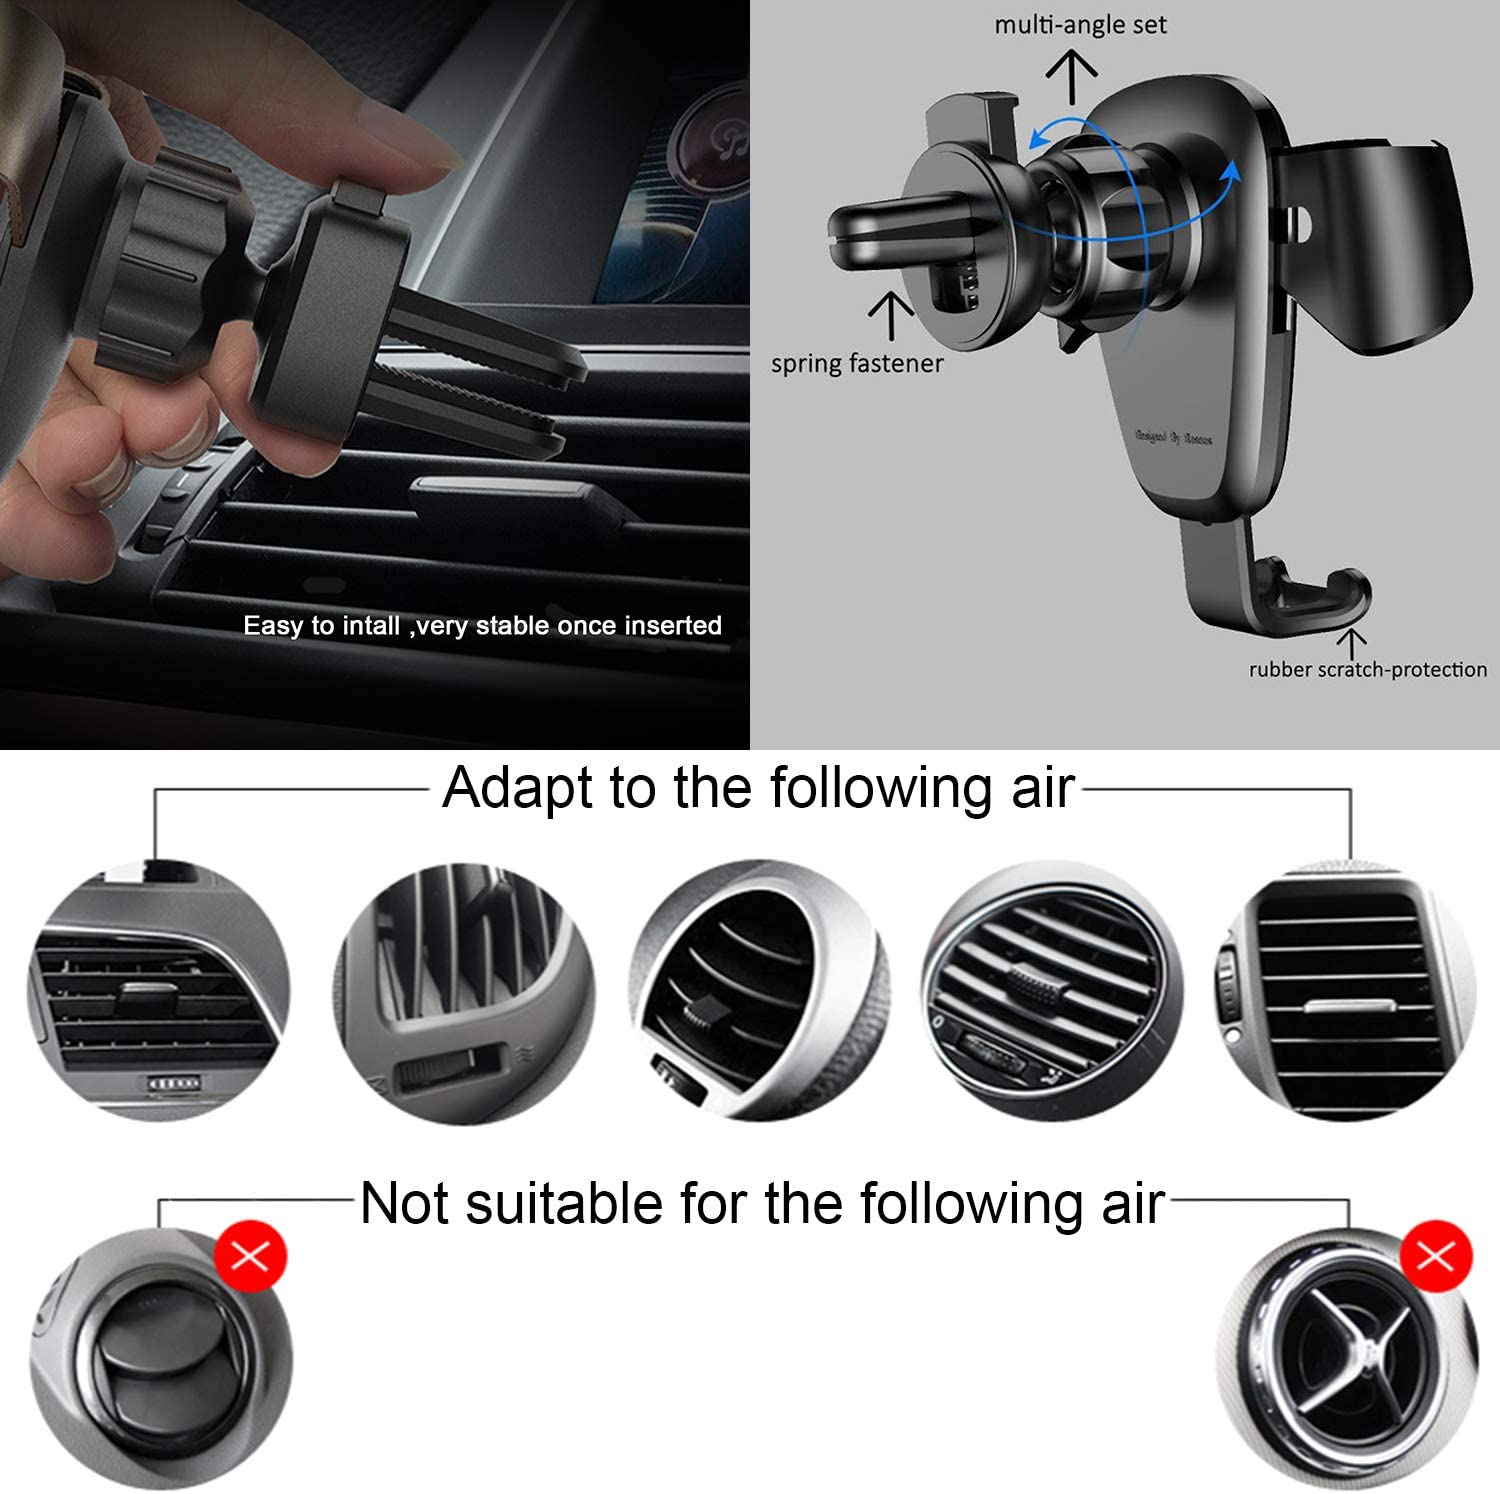 Fit-Fun one Touch Gravity Auto-Clamping Rotating Adjustable 360/° Rotation Metal Multi-Angle Universal Car Vent Phone Mount Holder Cradle car Vehicle air Vent GPS iPhone Samsung Android